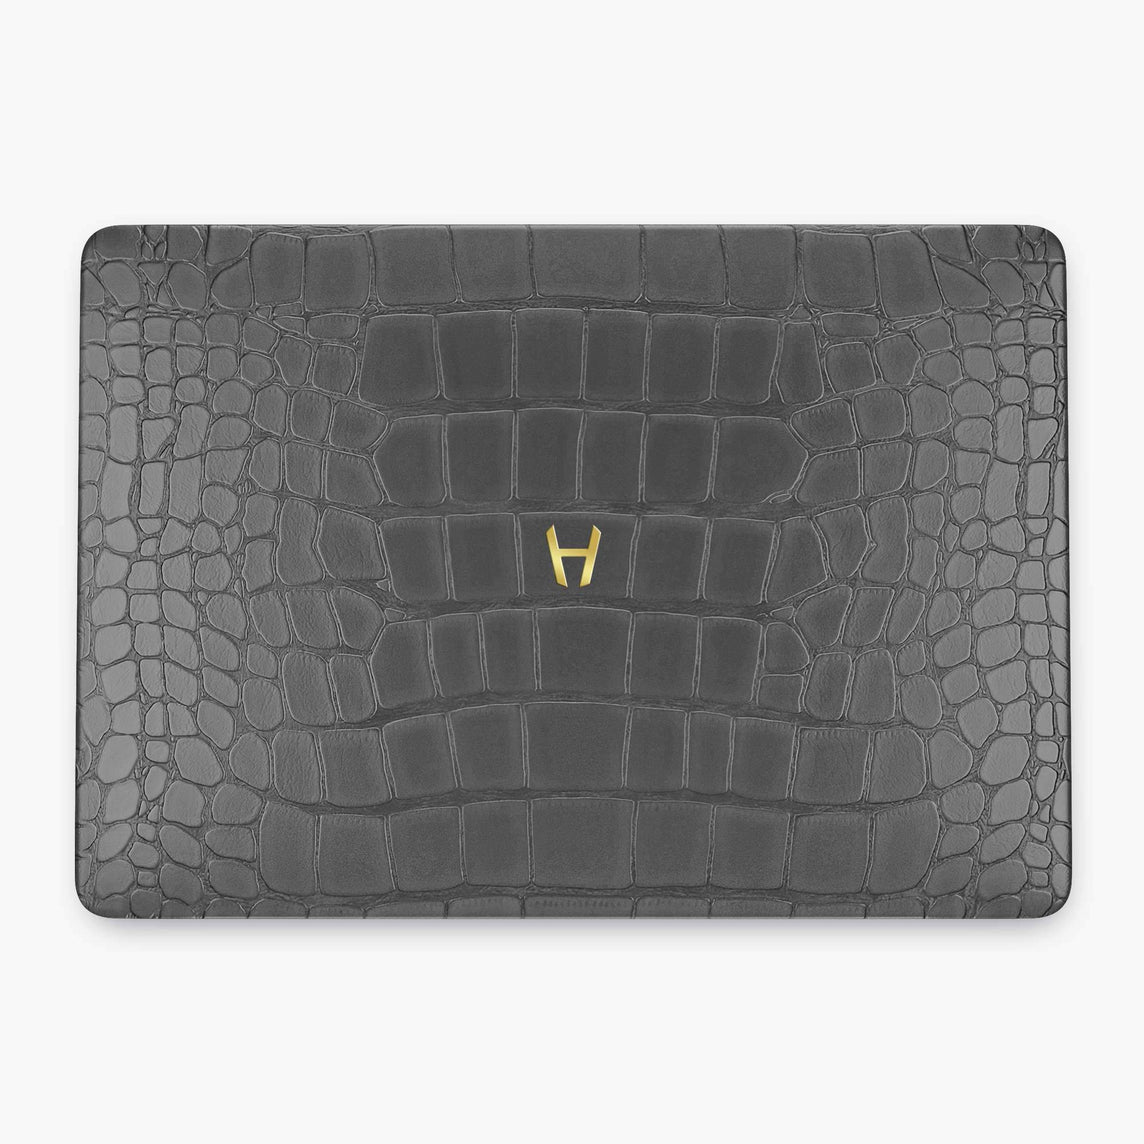 Alligator Macbook Case Apple Mac Book 15'' Pro | Grey - Yellow Gold